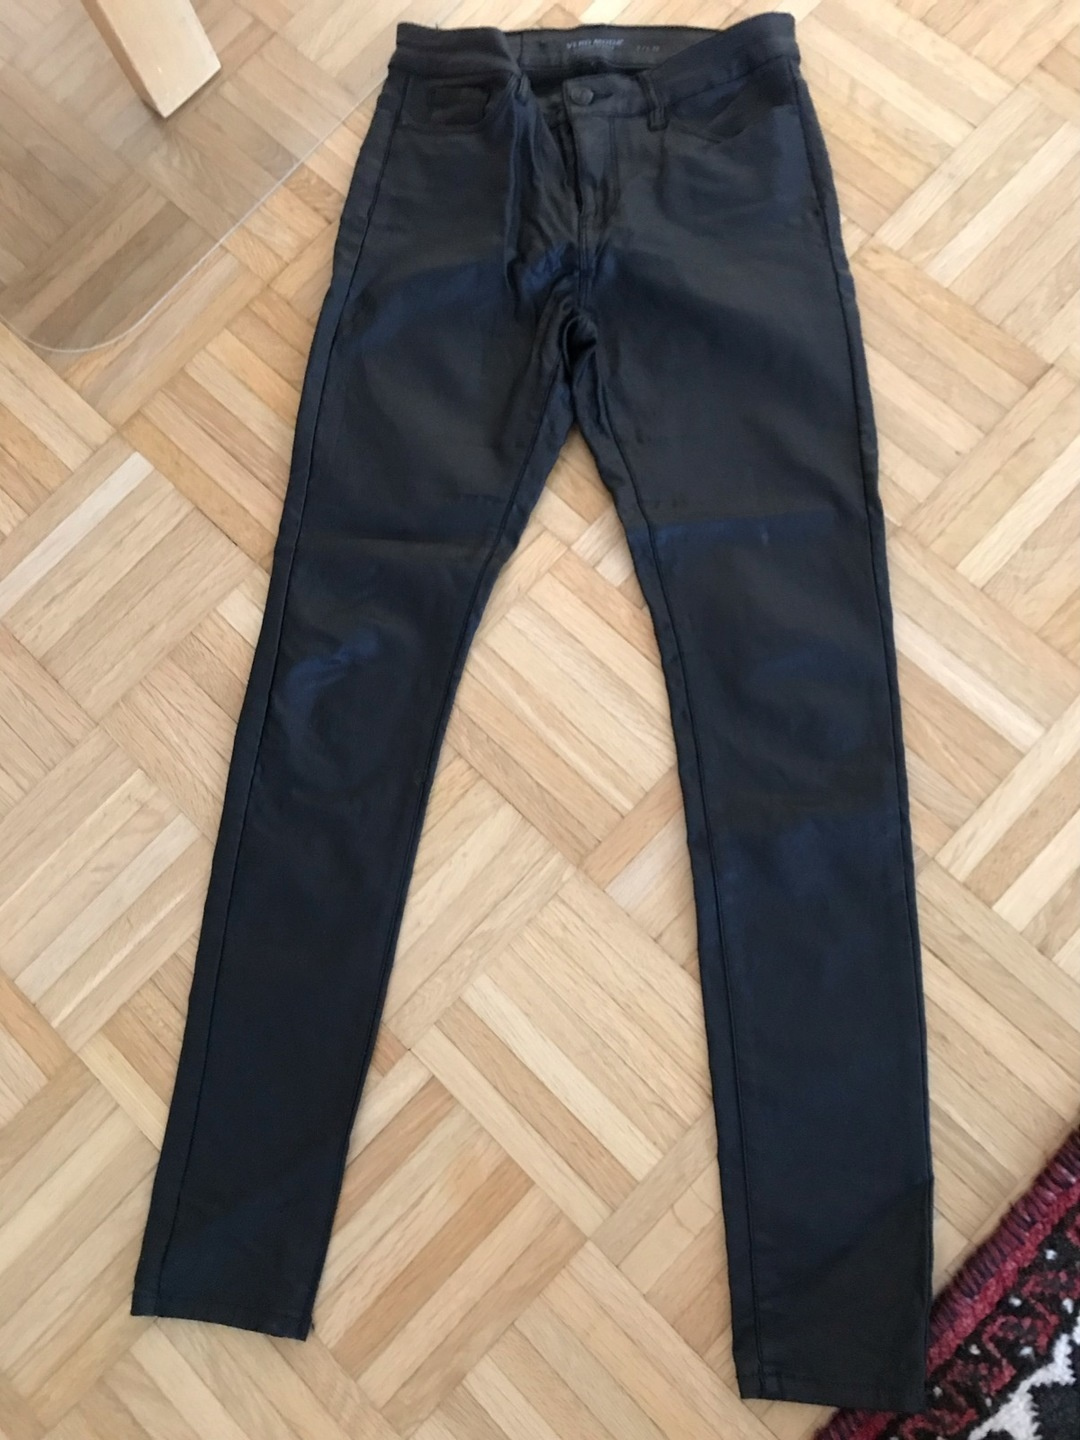 Women's trousers & jeans - VERO MODA photo 1